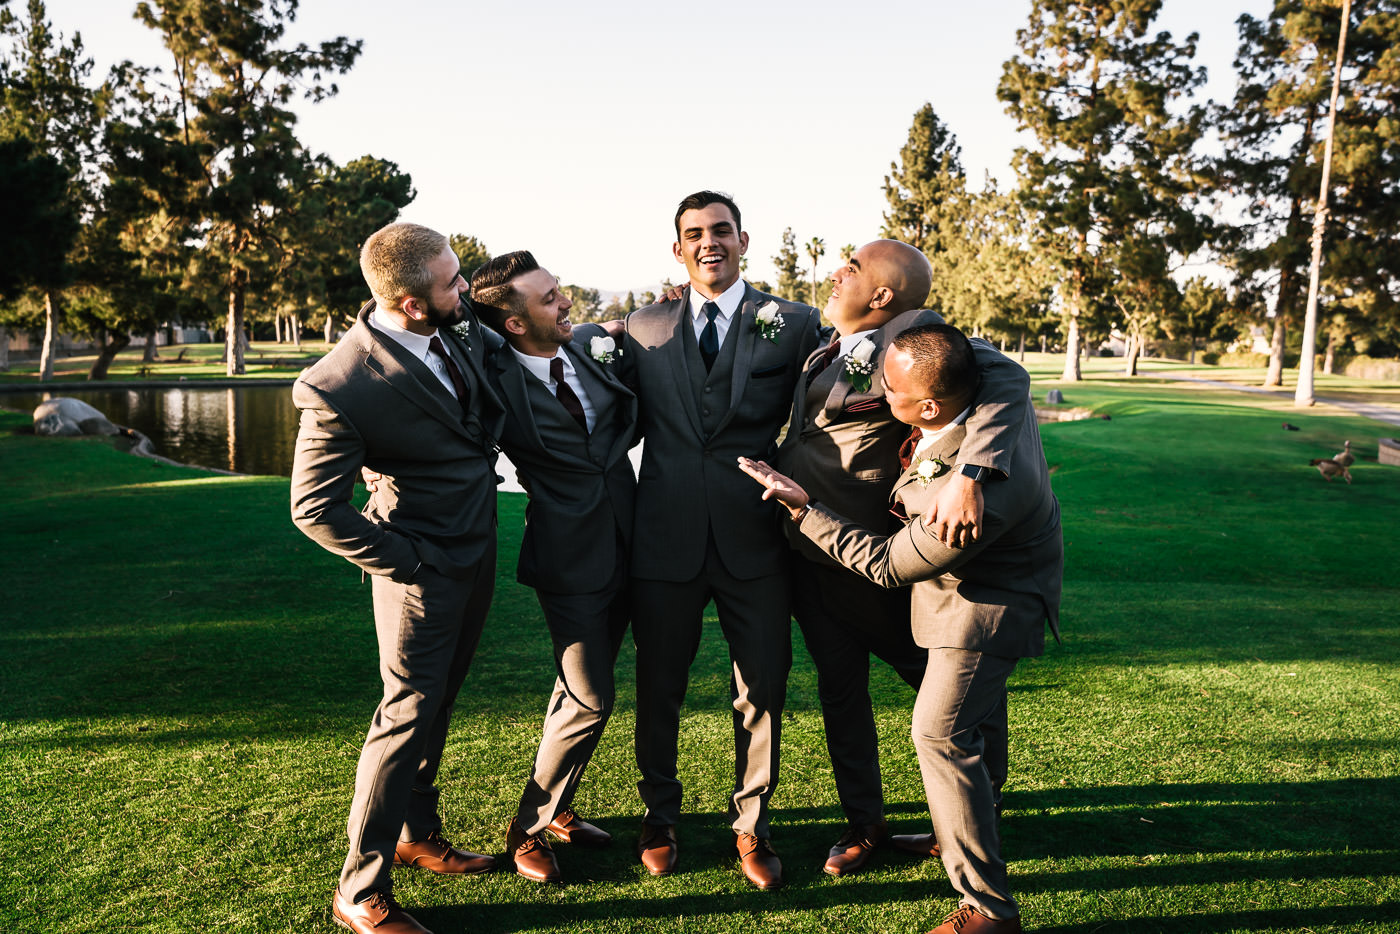 Groomsmen poses with the groom and share a laugh.